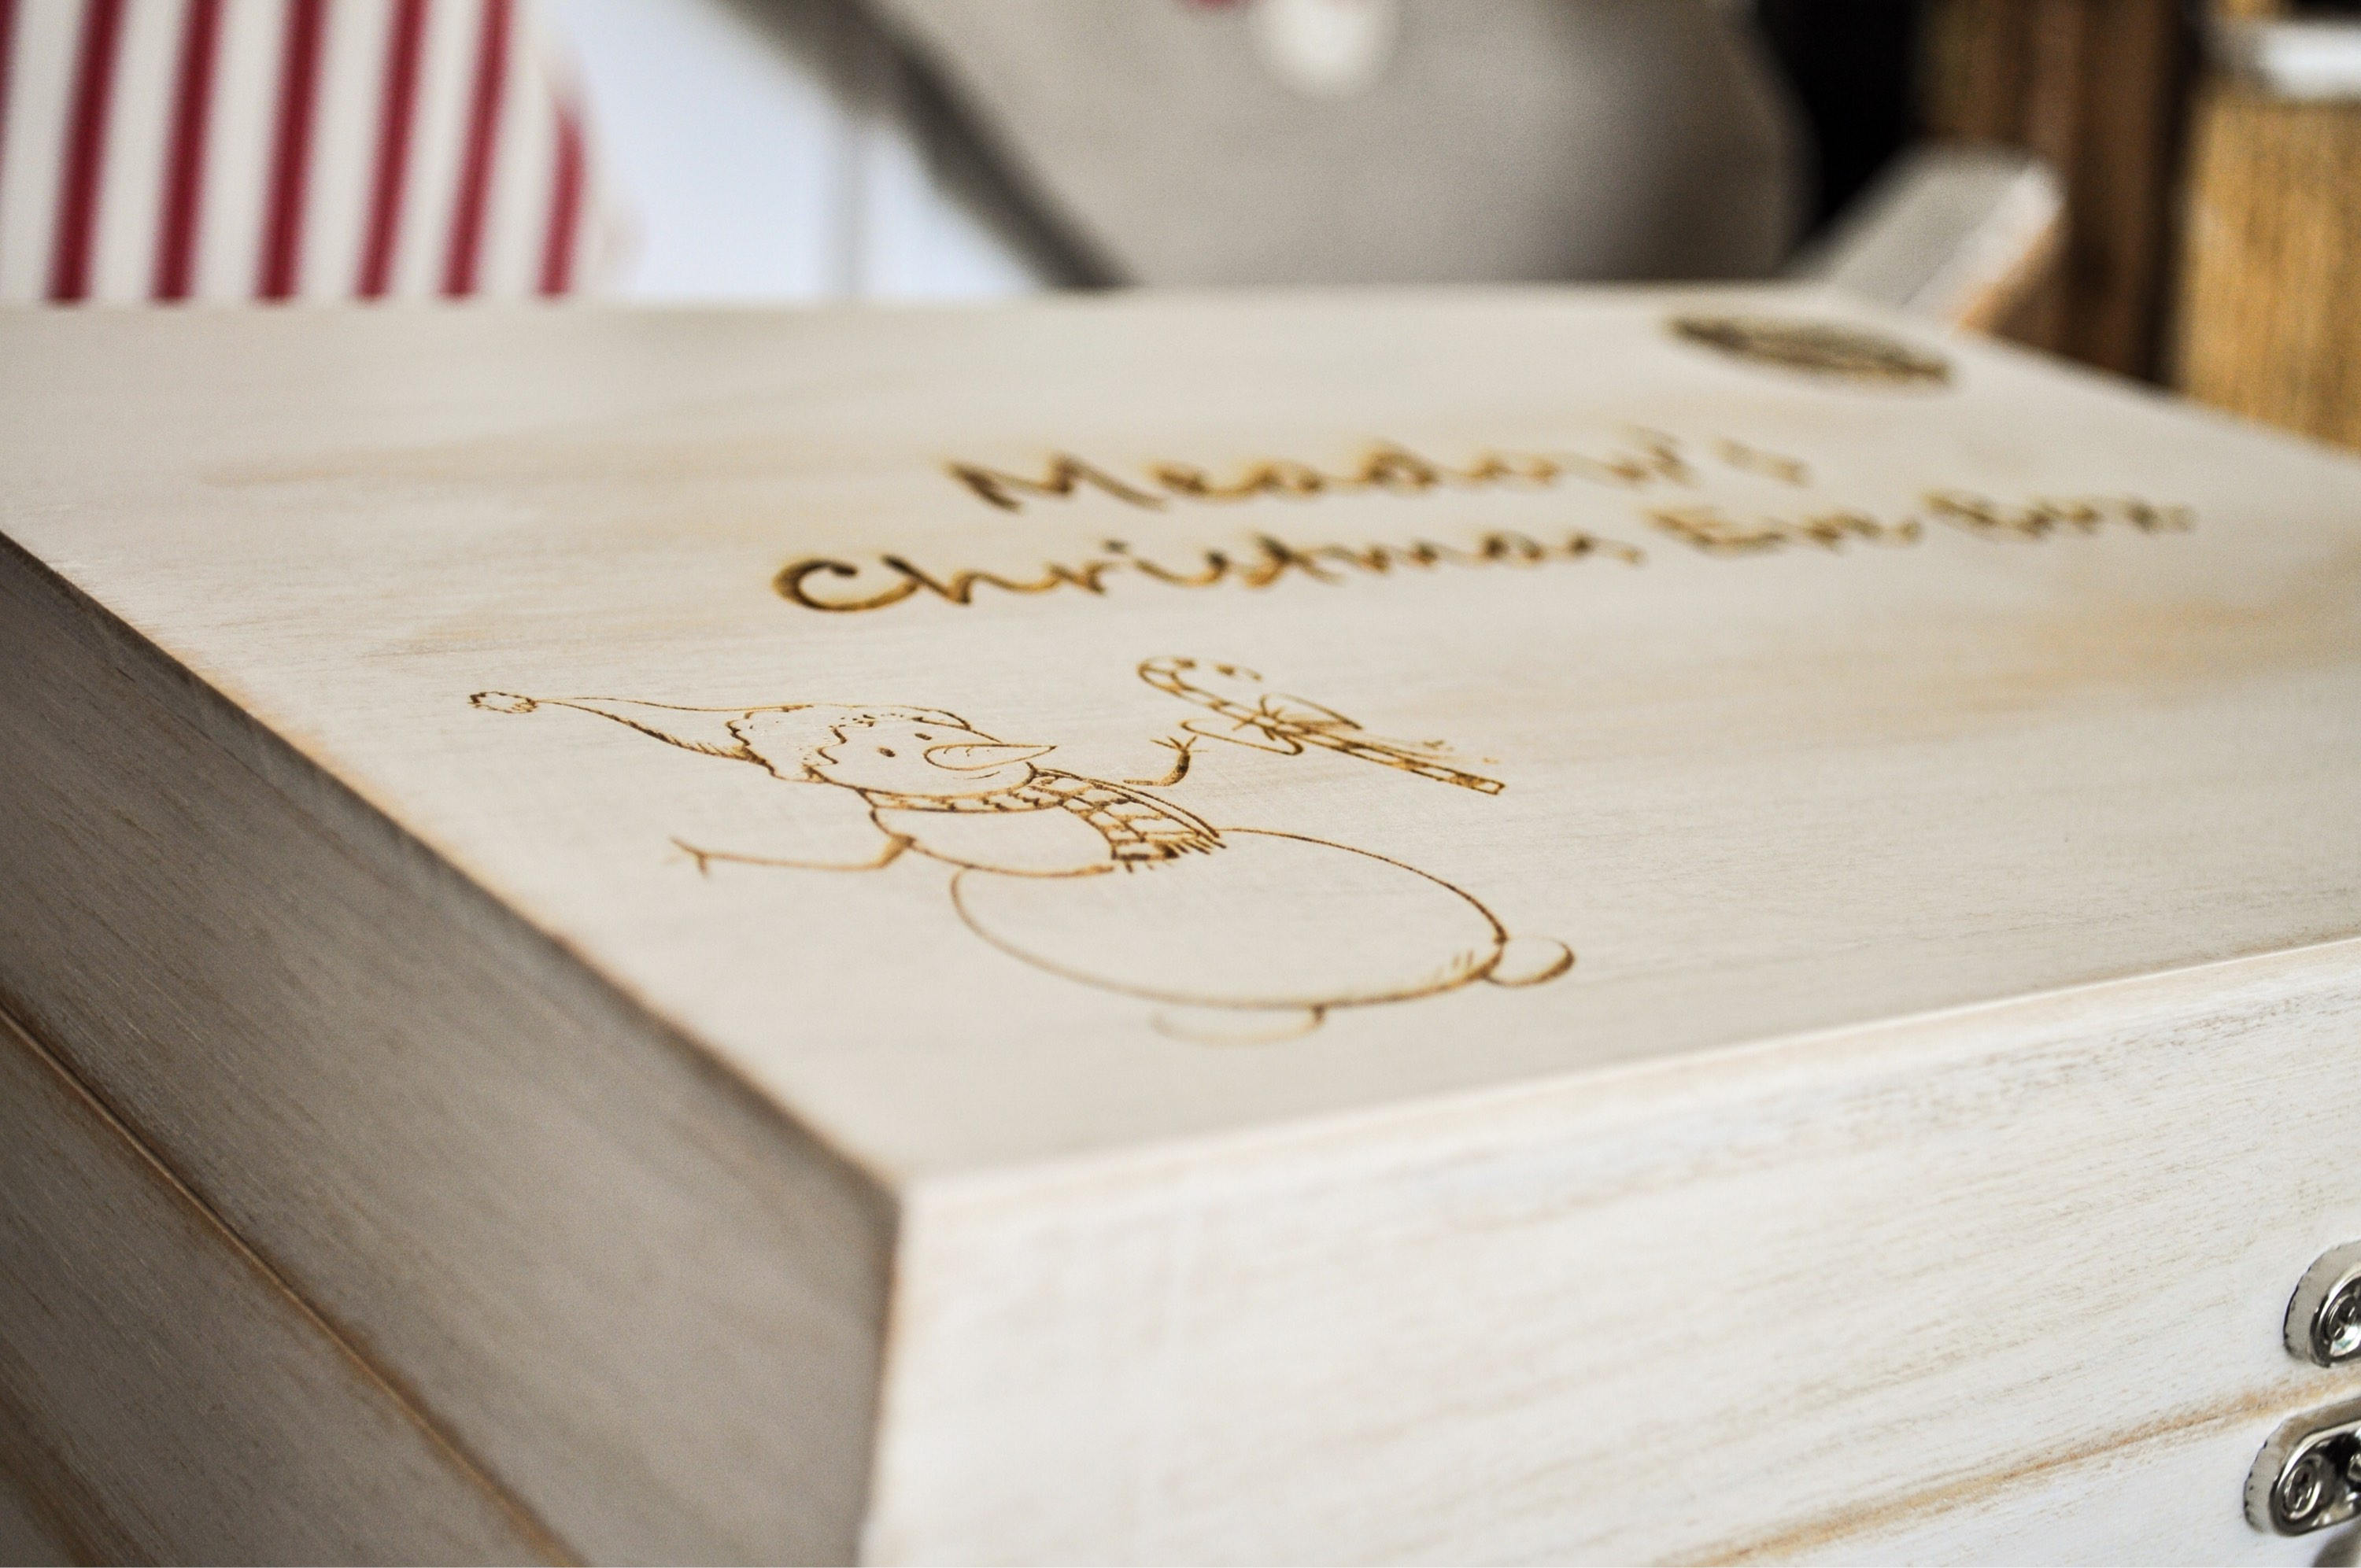 Personalised Christmas Eve Box Snowman Design /Rustic White Box/ Memory Box/ Xmas Eve Box/Engraved Wood Christmas Box/Christmas Tradition